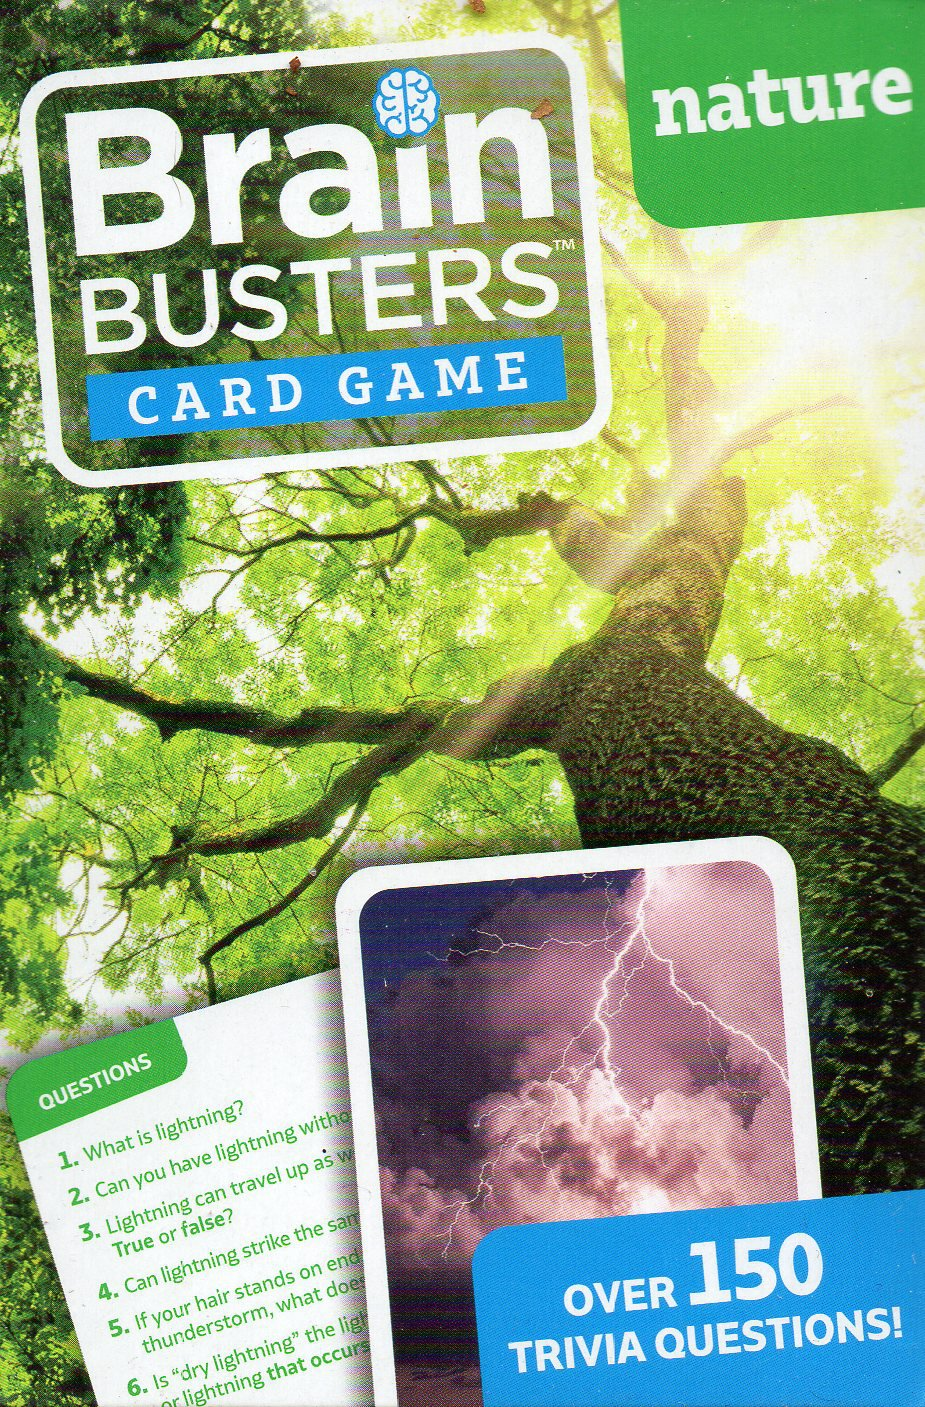 Brain Busters Card Game - Nature - with Over 150 Trivia Questions - Educational Flash Cards